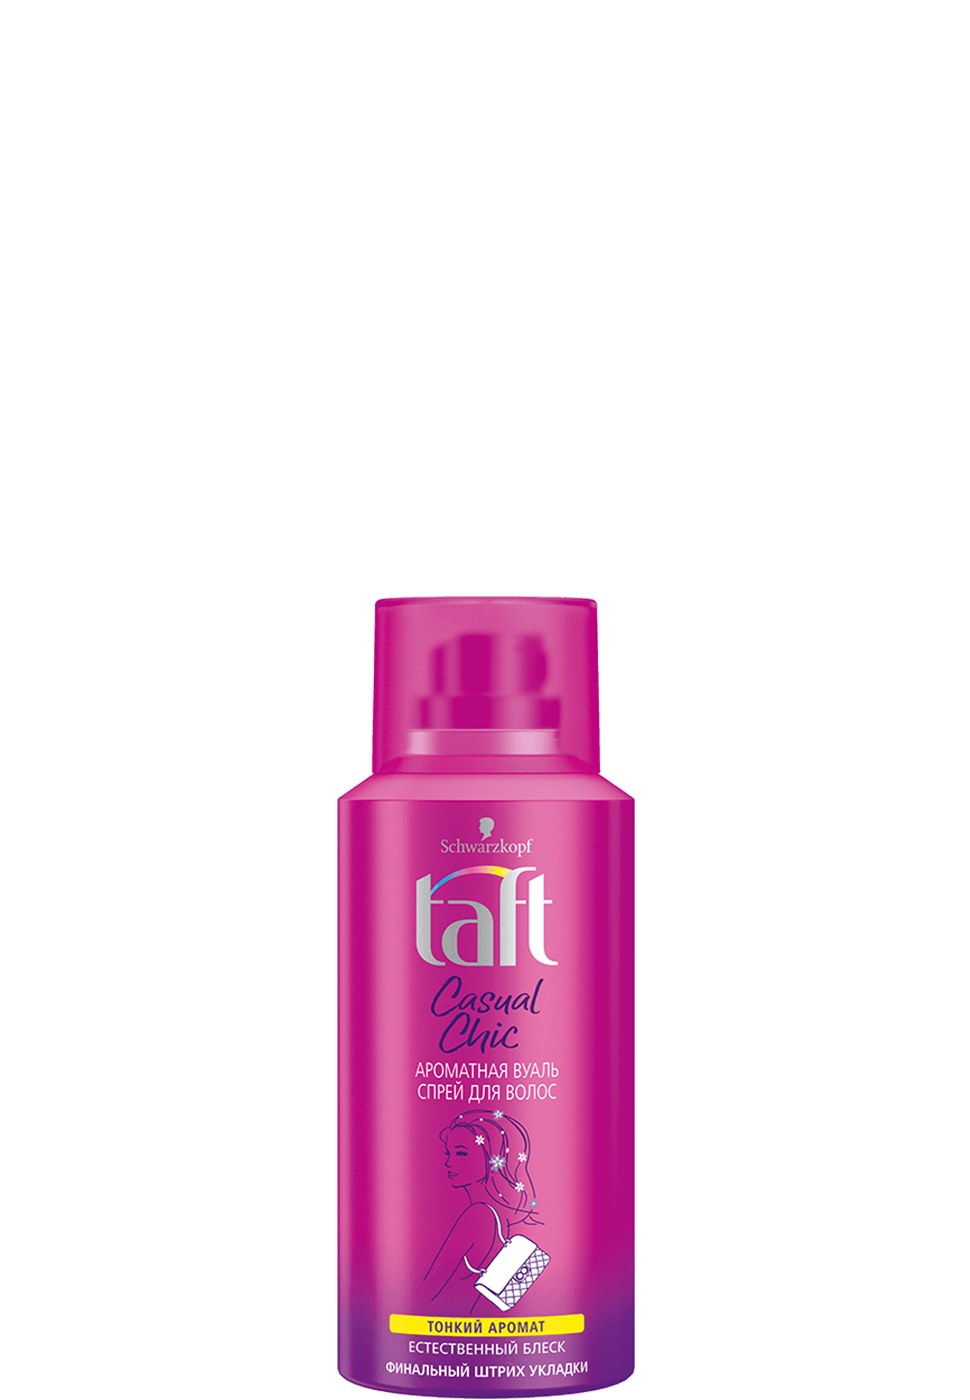 taft_ru_casual_chic_fragrance_shine_mist_970x1400